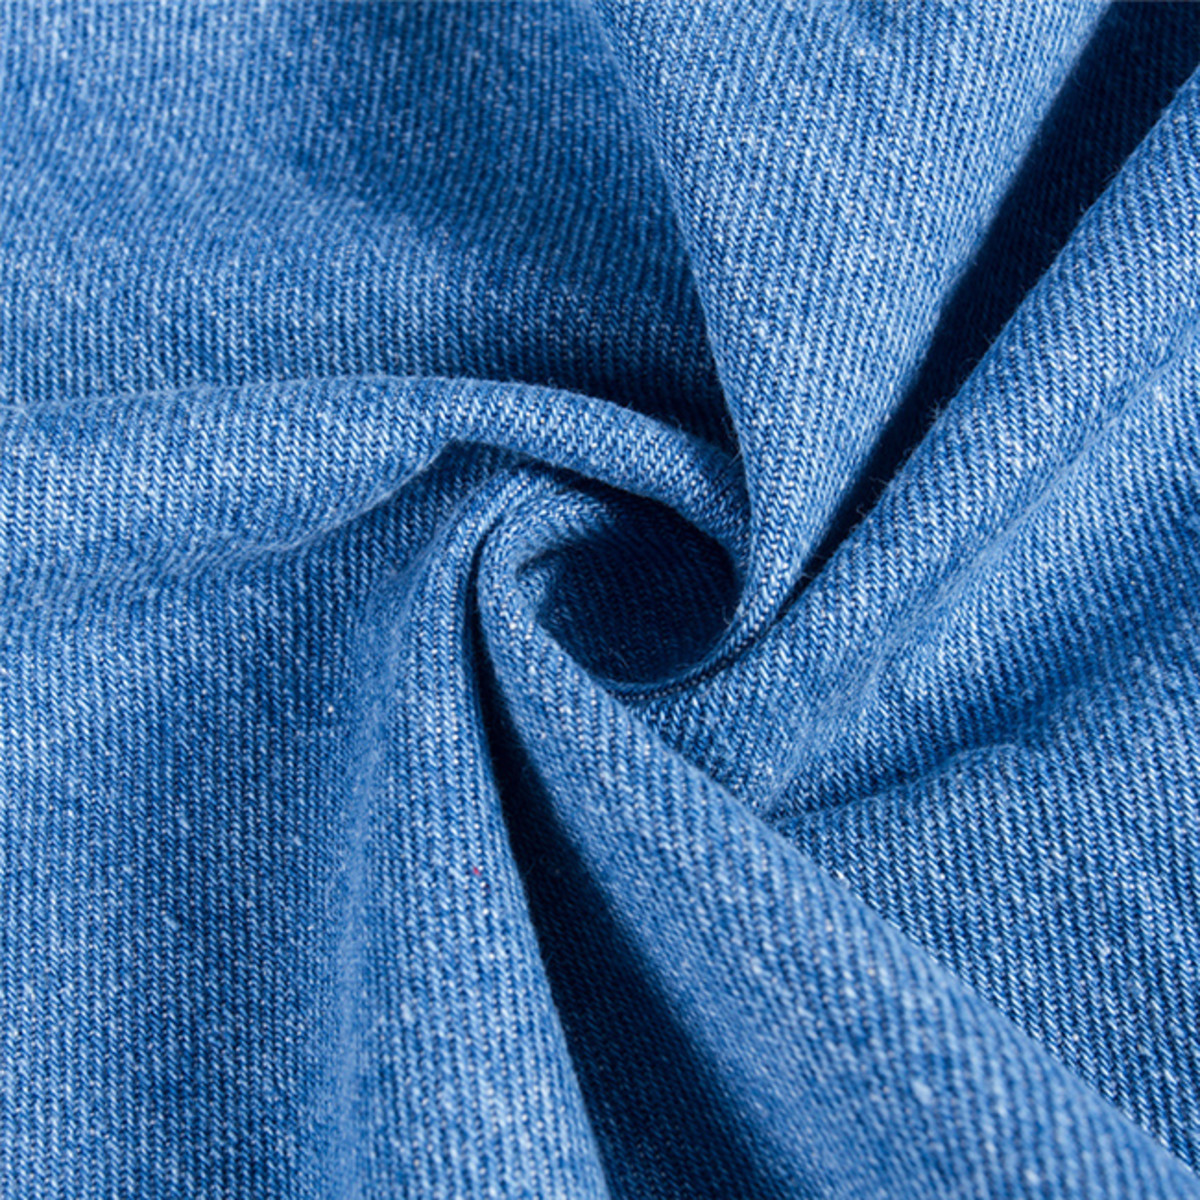 Denim: Types, Properties, Manufacturing Process, and Fabric Care